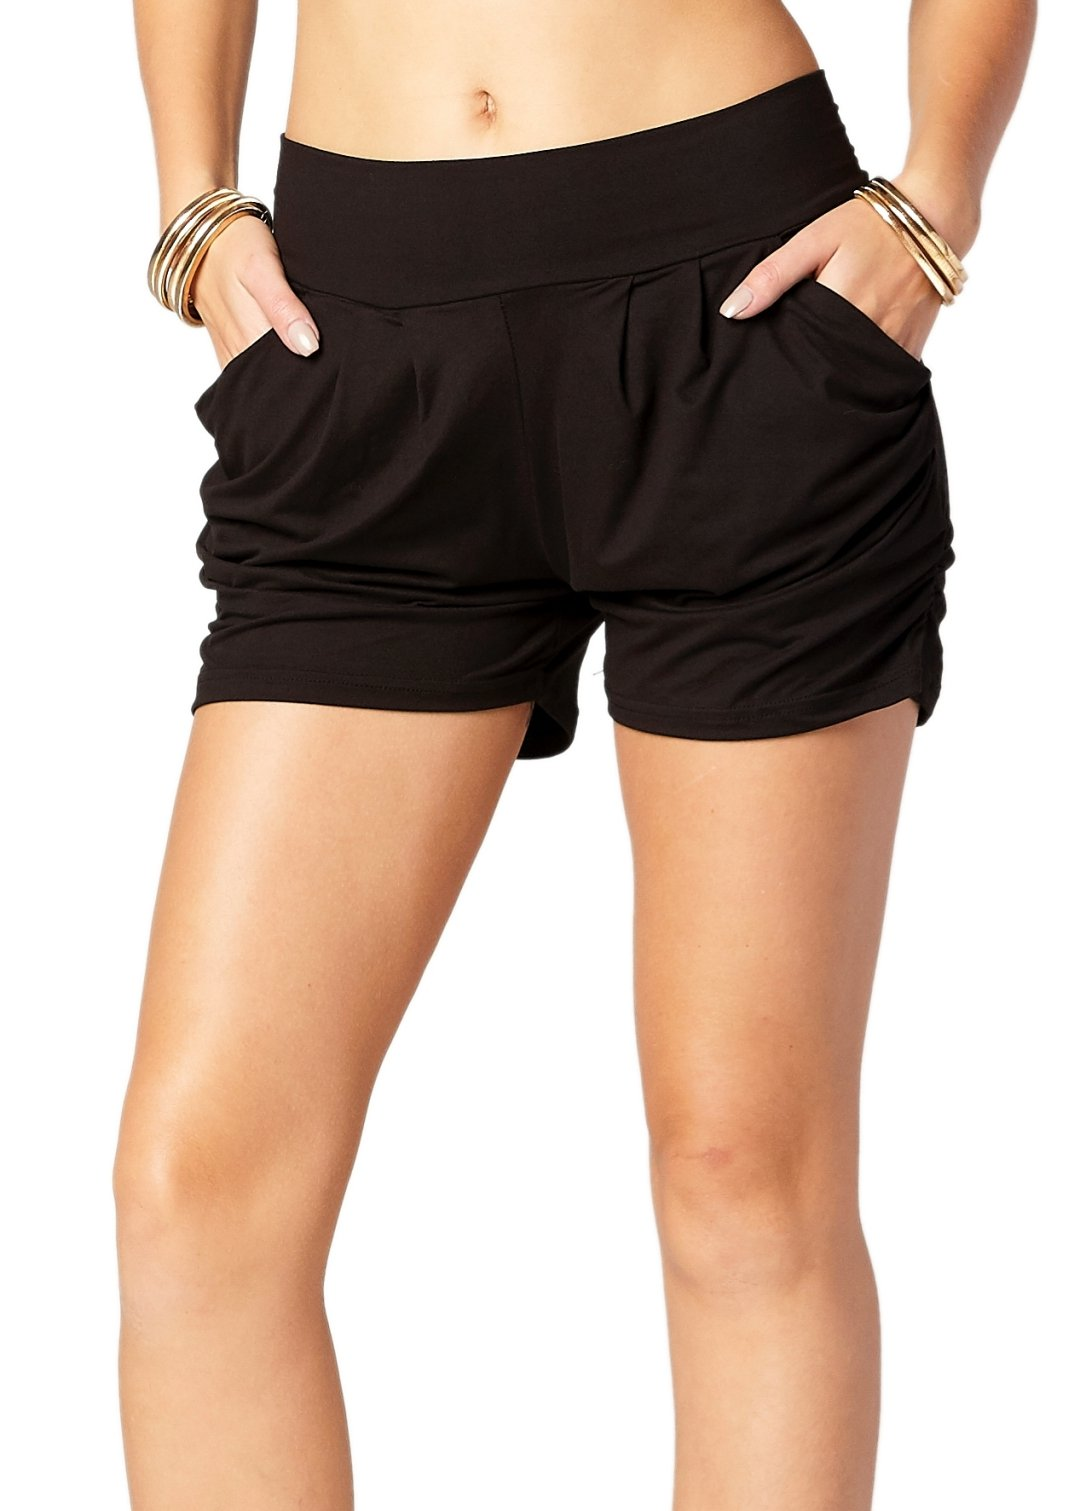 Premium Ultra Soft Harem Shorts with Pockets - 40